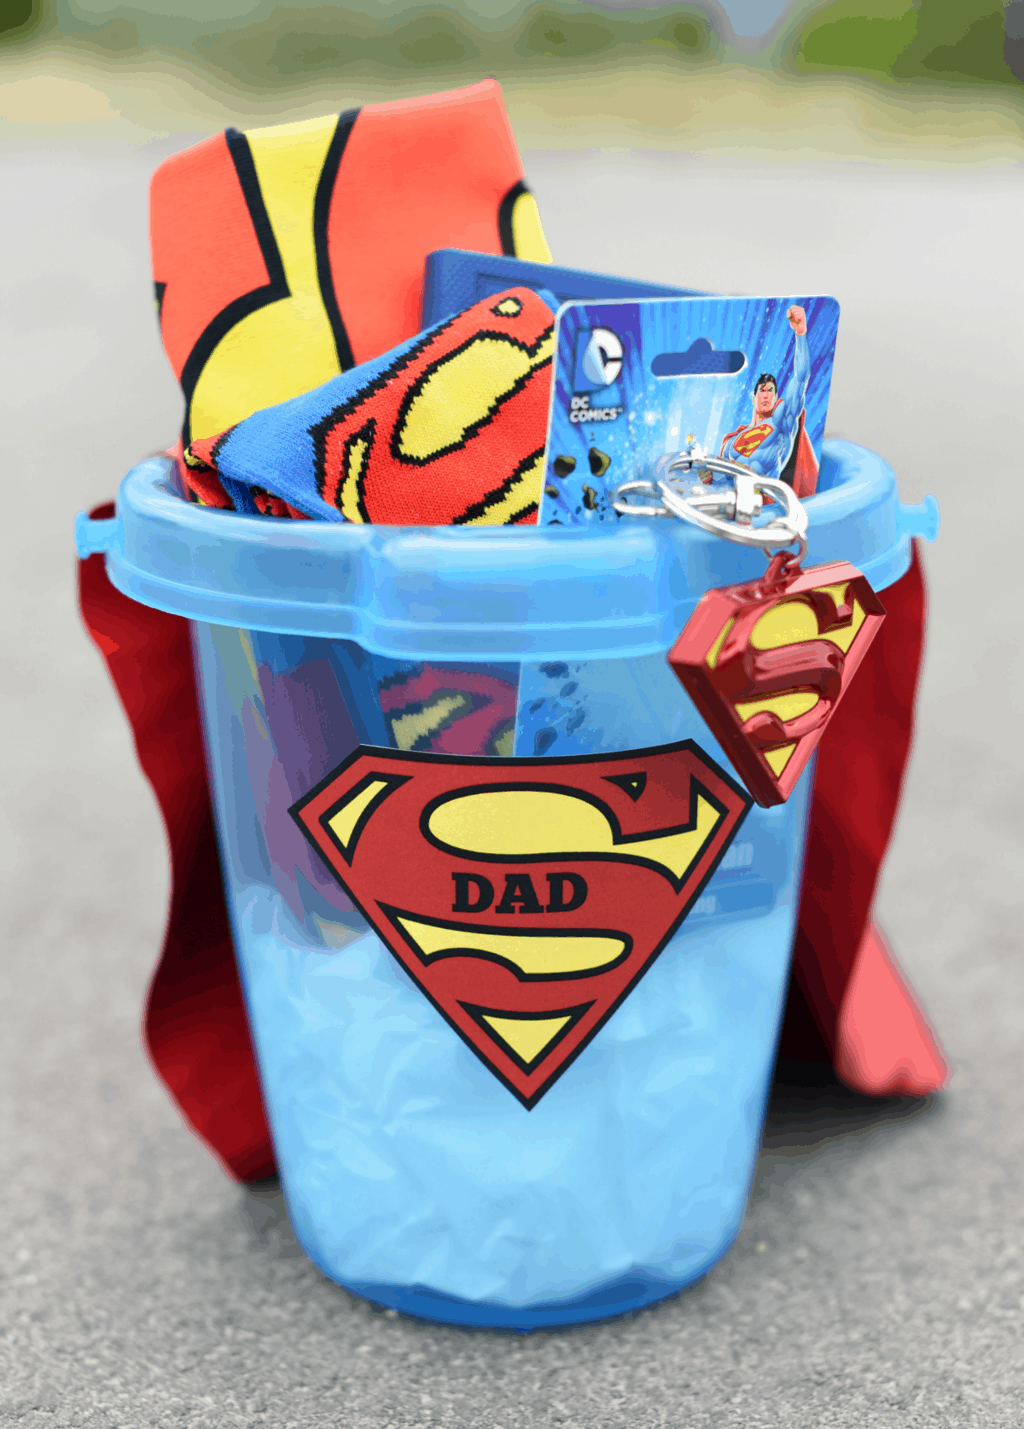 Superhero gift idea for father's day